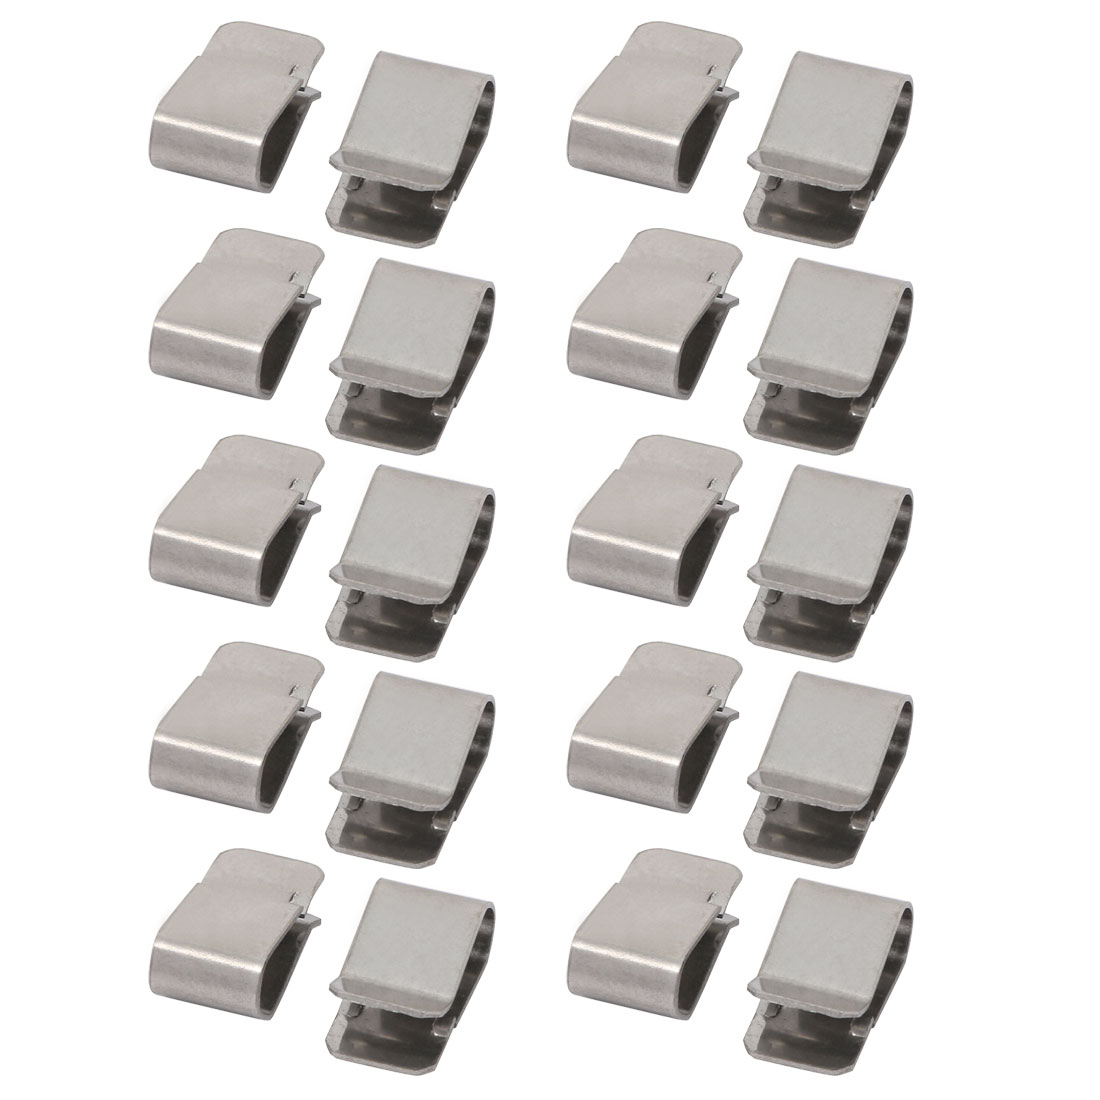 20pcs 22mmx12mm 304 Stainless Steel U Clip Silver Tone for 3.5mm Pipe